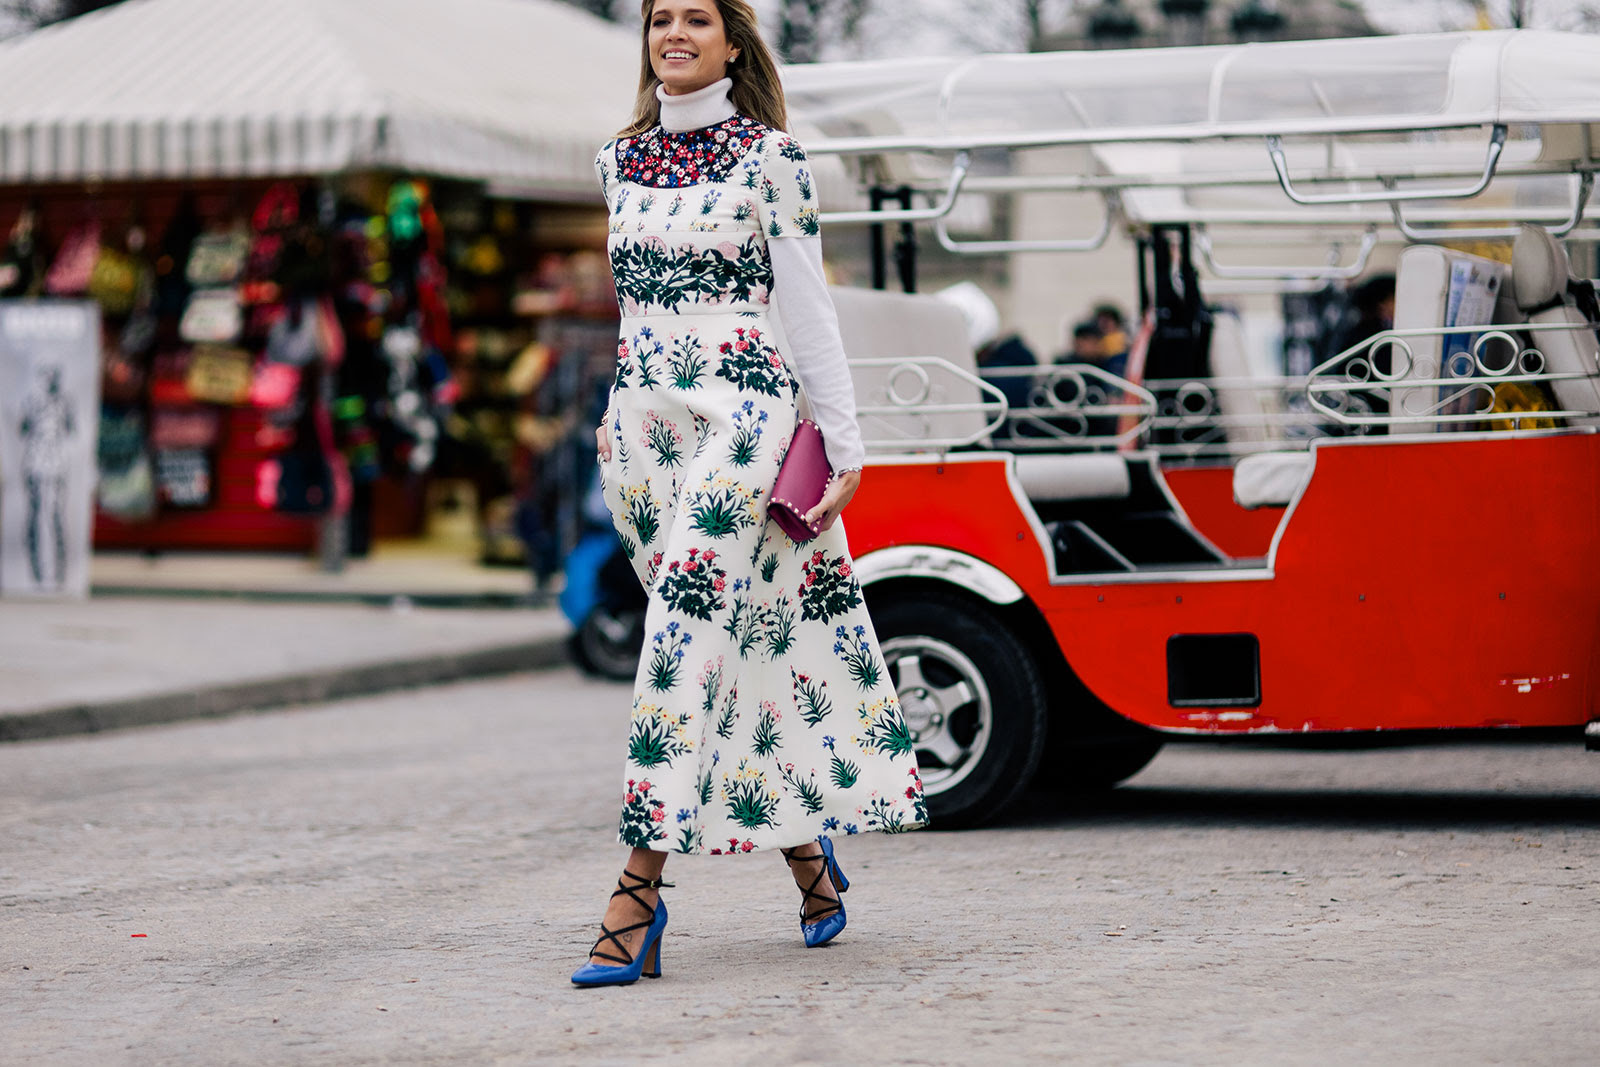 Helena Bordon wearing a long floral Valentino dress, Valentino shoes and clutch bag before the Valentino Fall/Winter 2015-2016 fashion show at the Tuileries in Paris, France